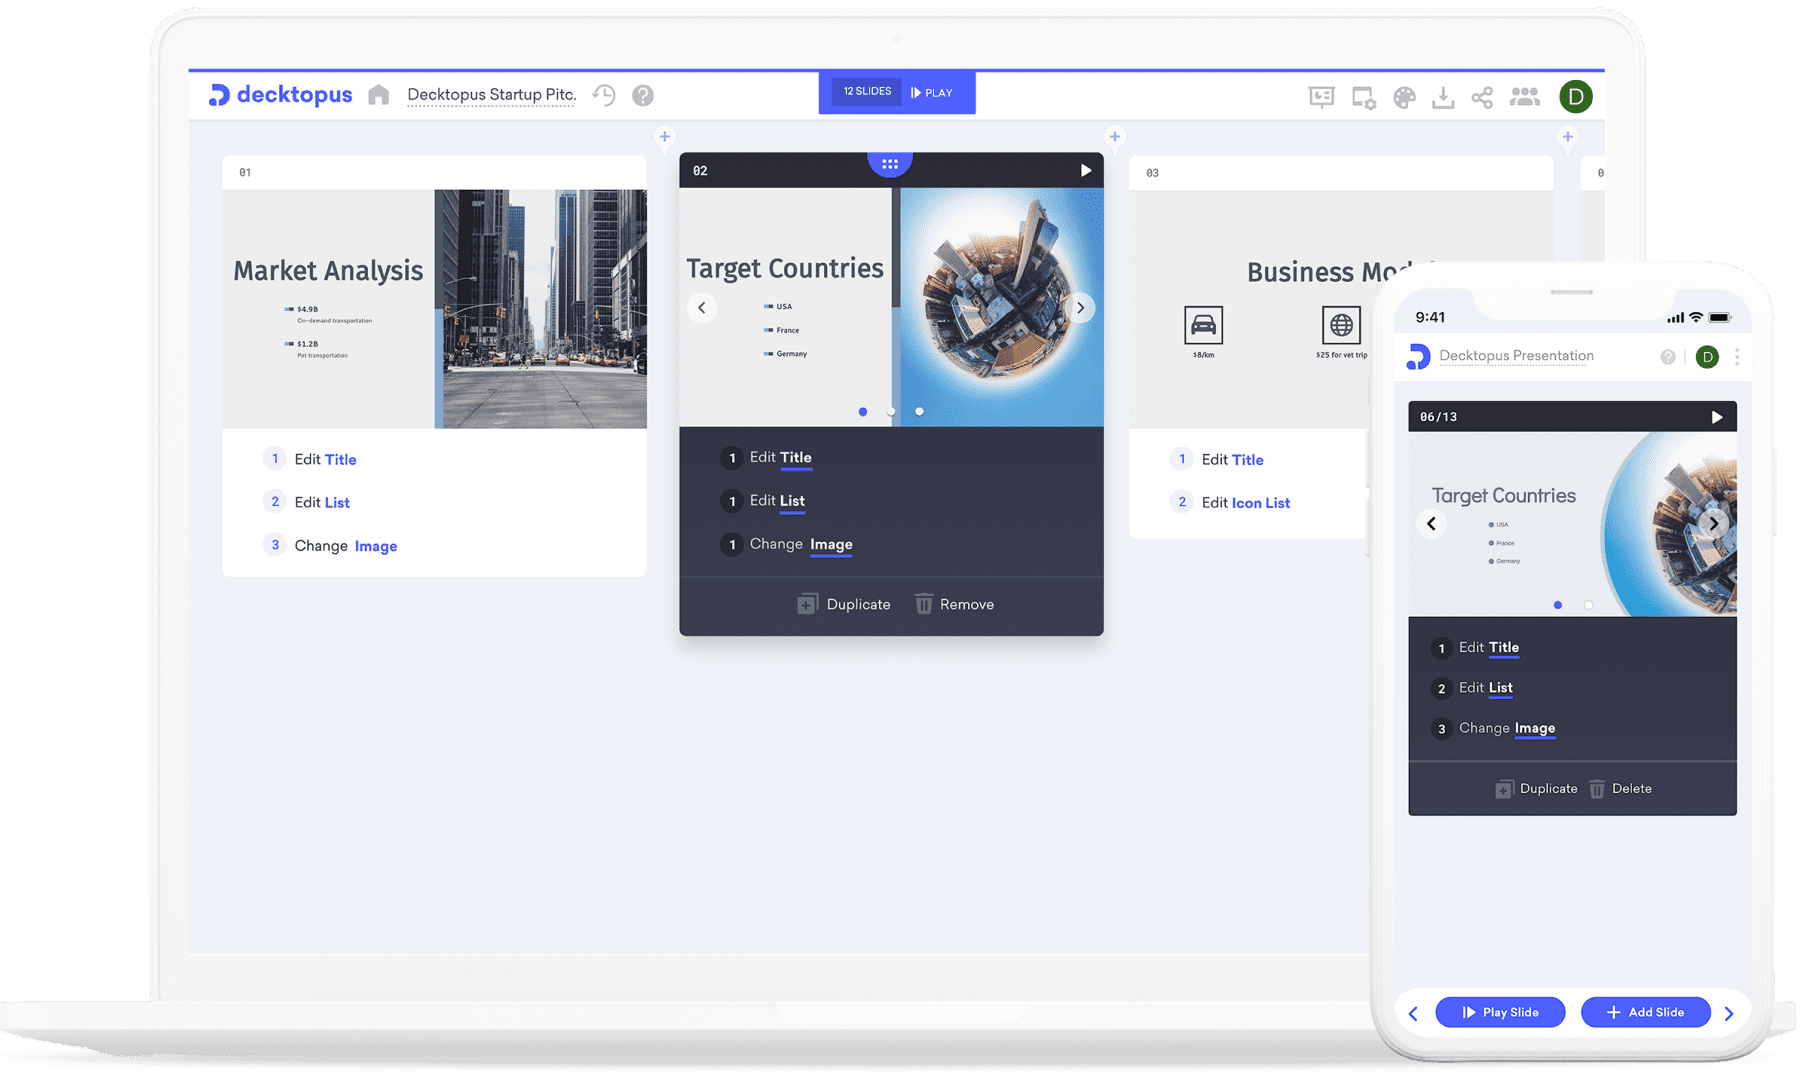 Decktopus edit screen in desktop and mobile device